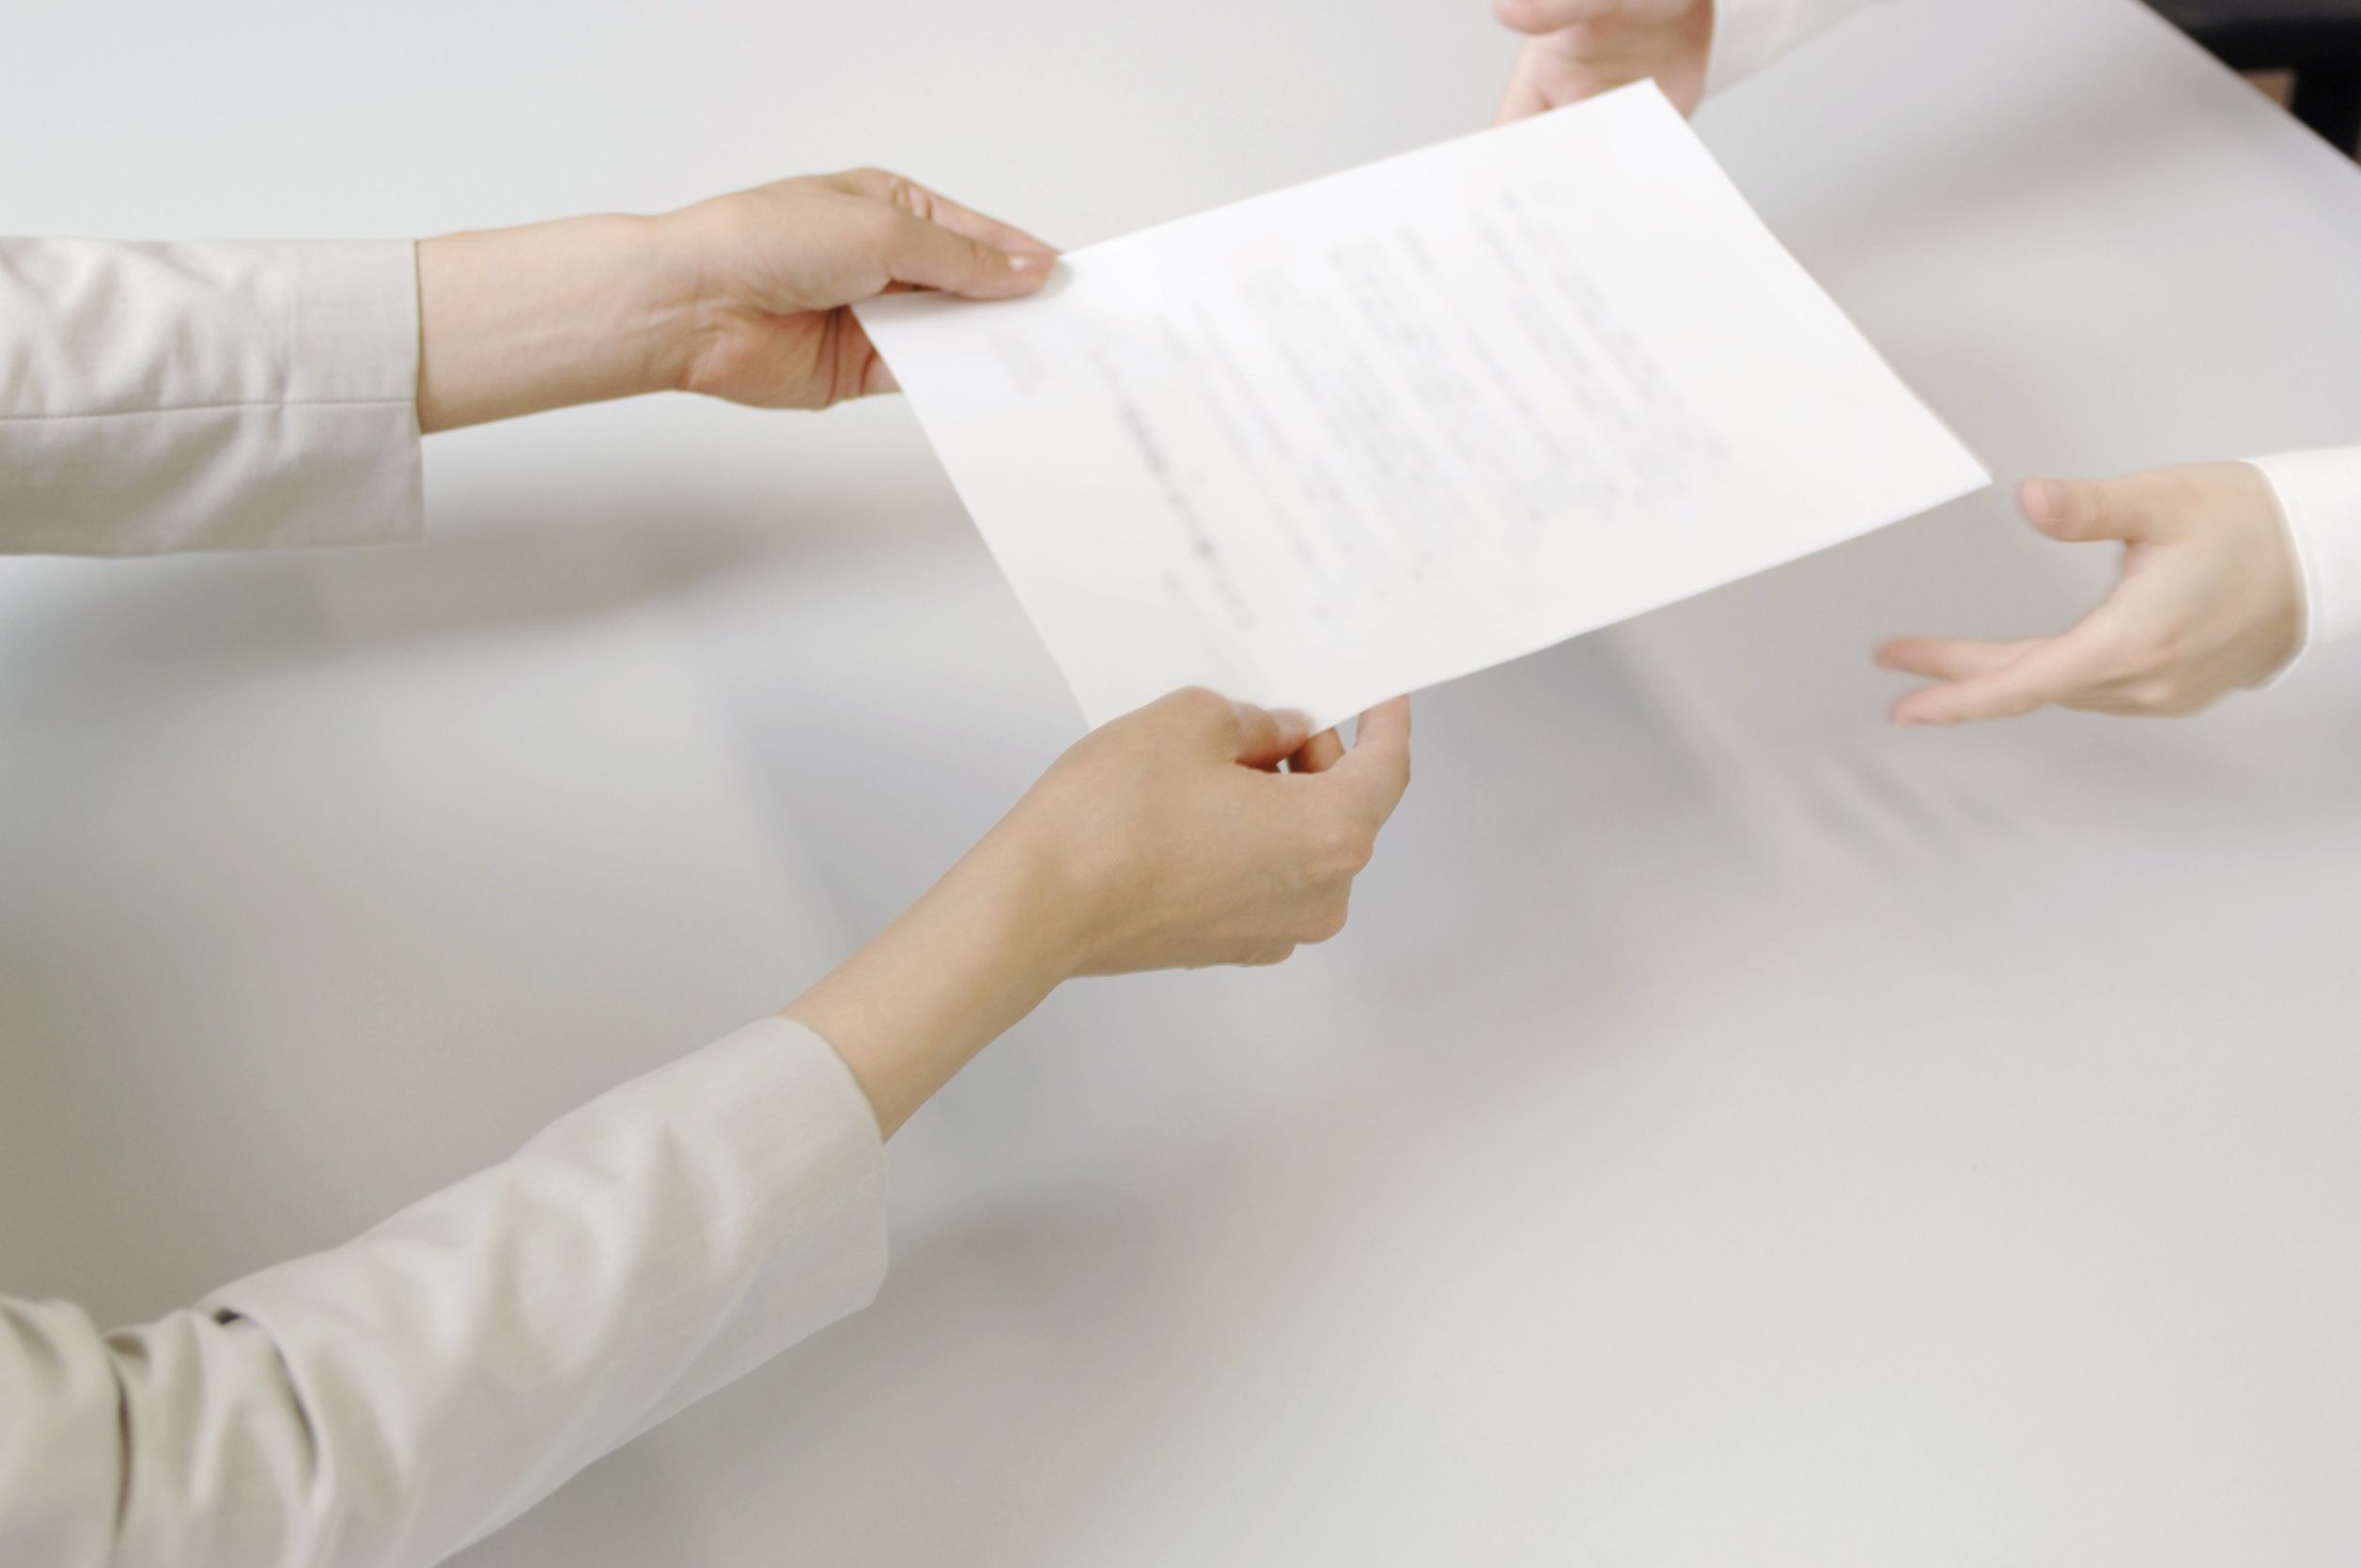 39737826 - acceptance of the contract